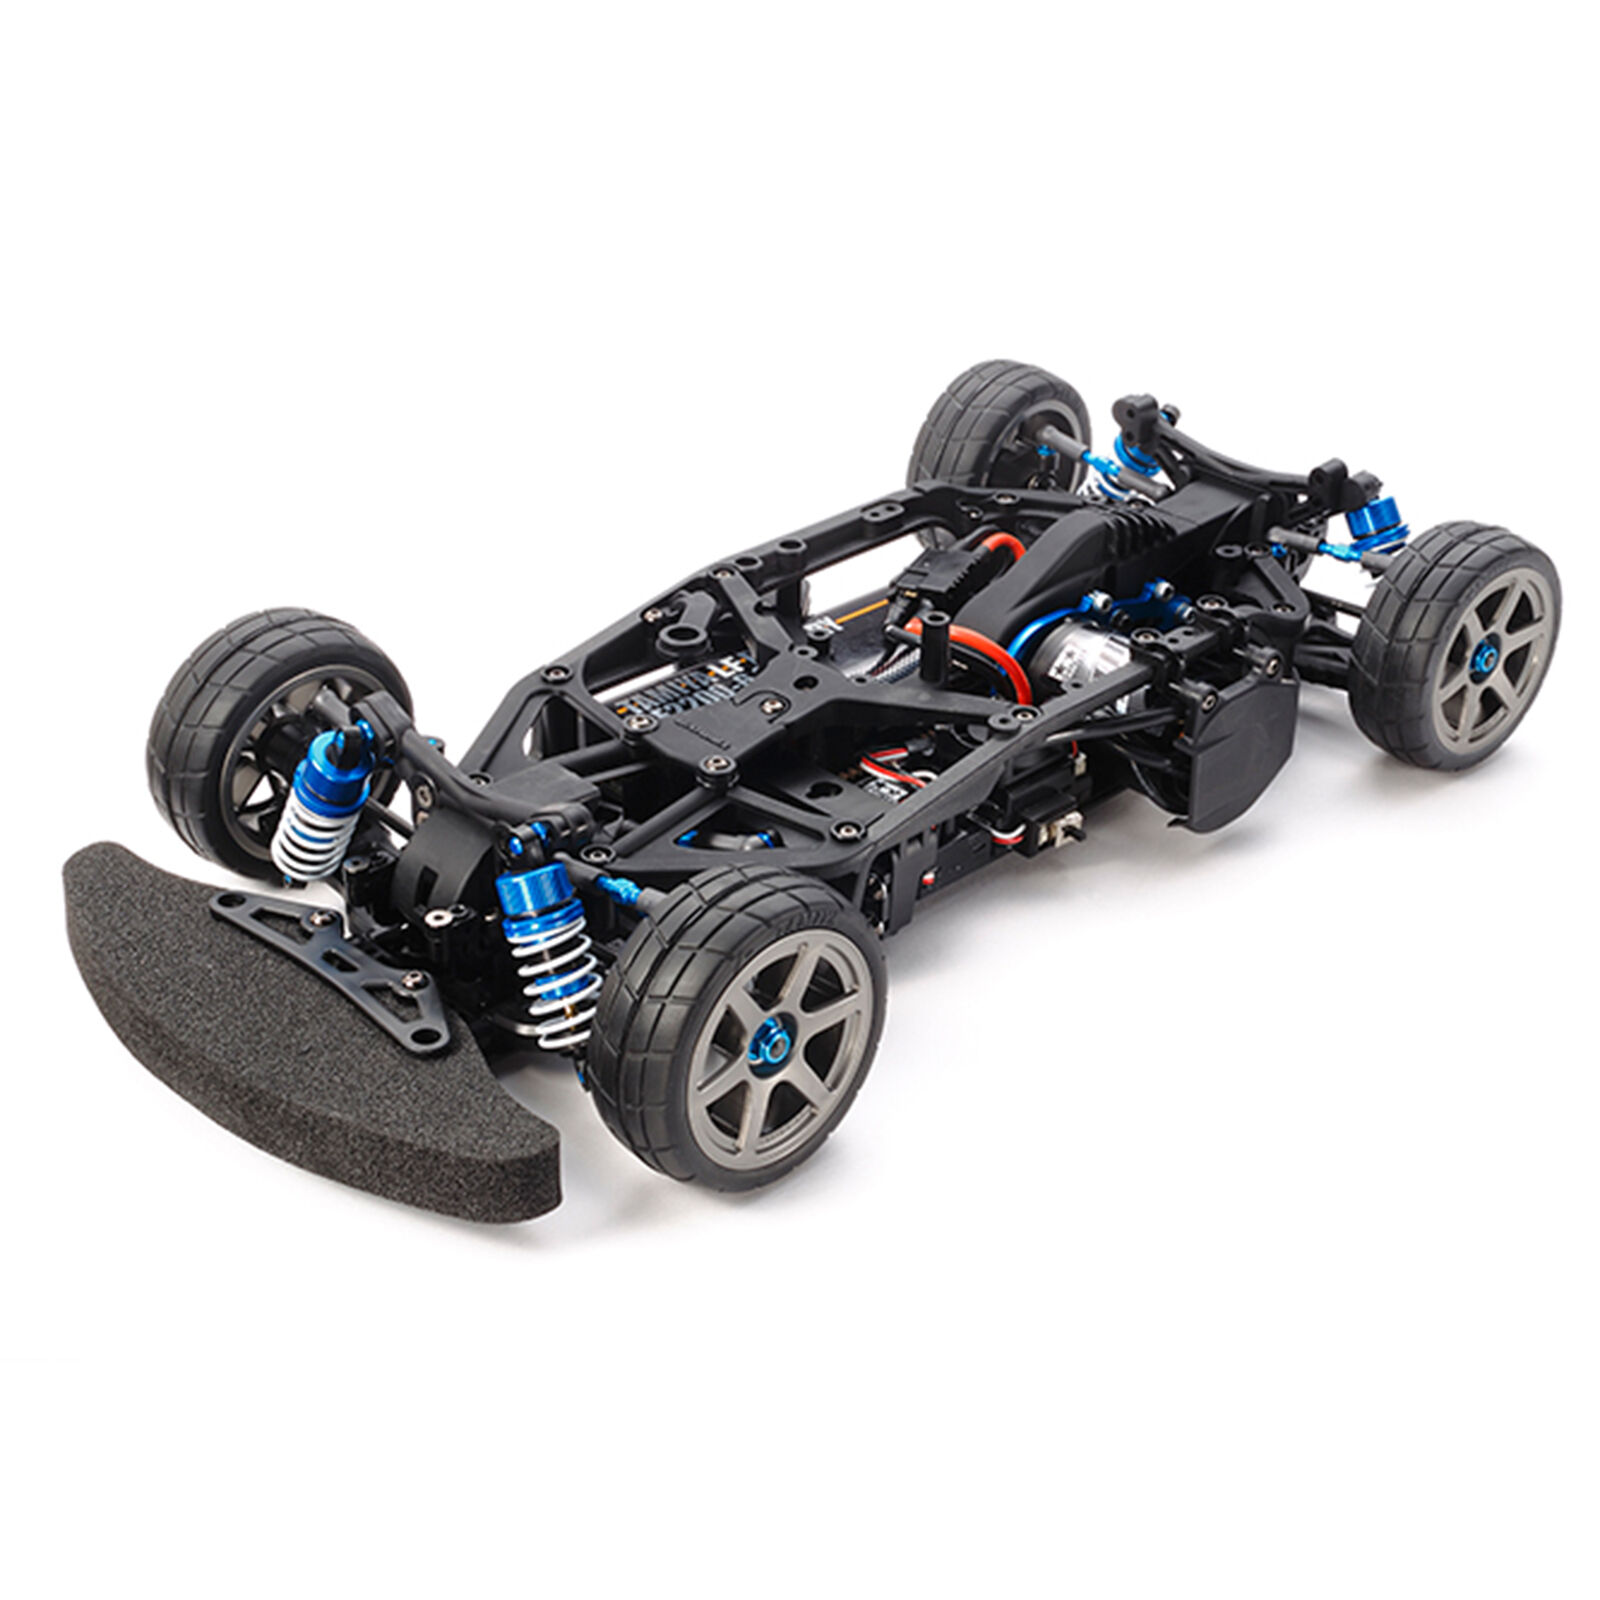 1/10 TA07 PRO 4WD Chassis Kit